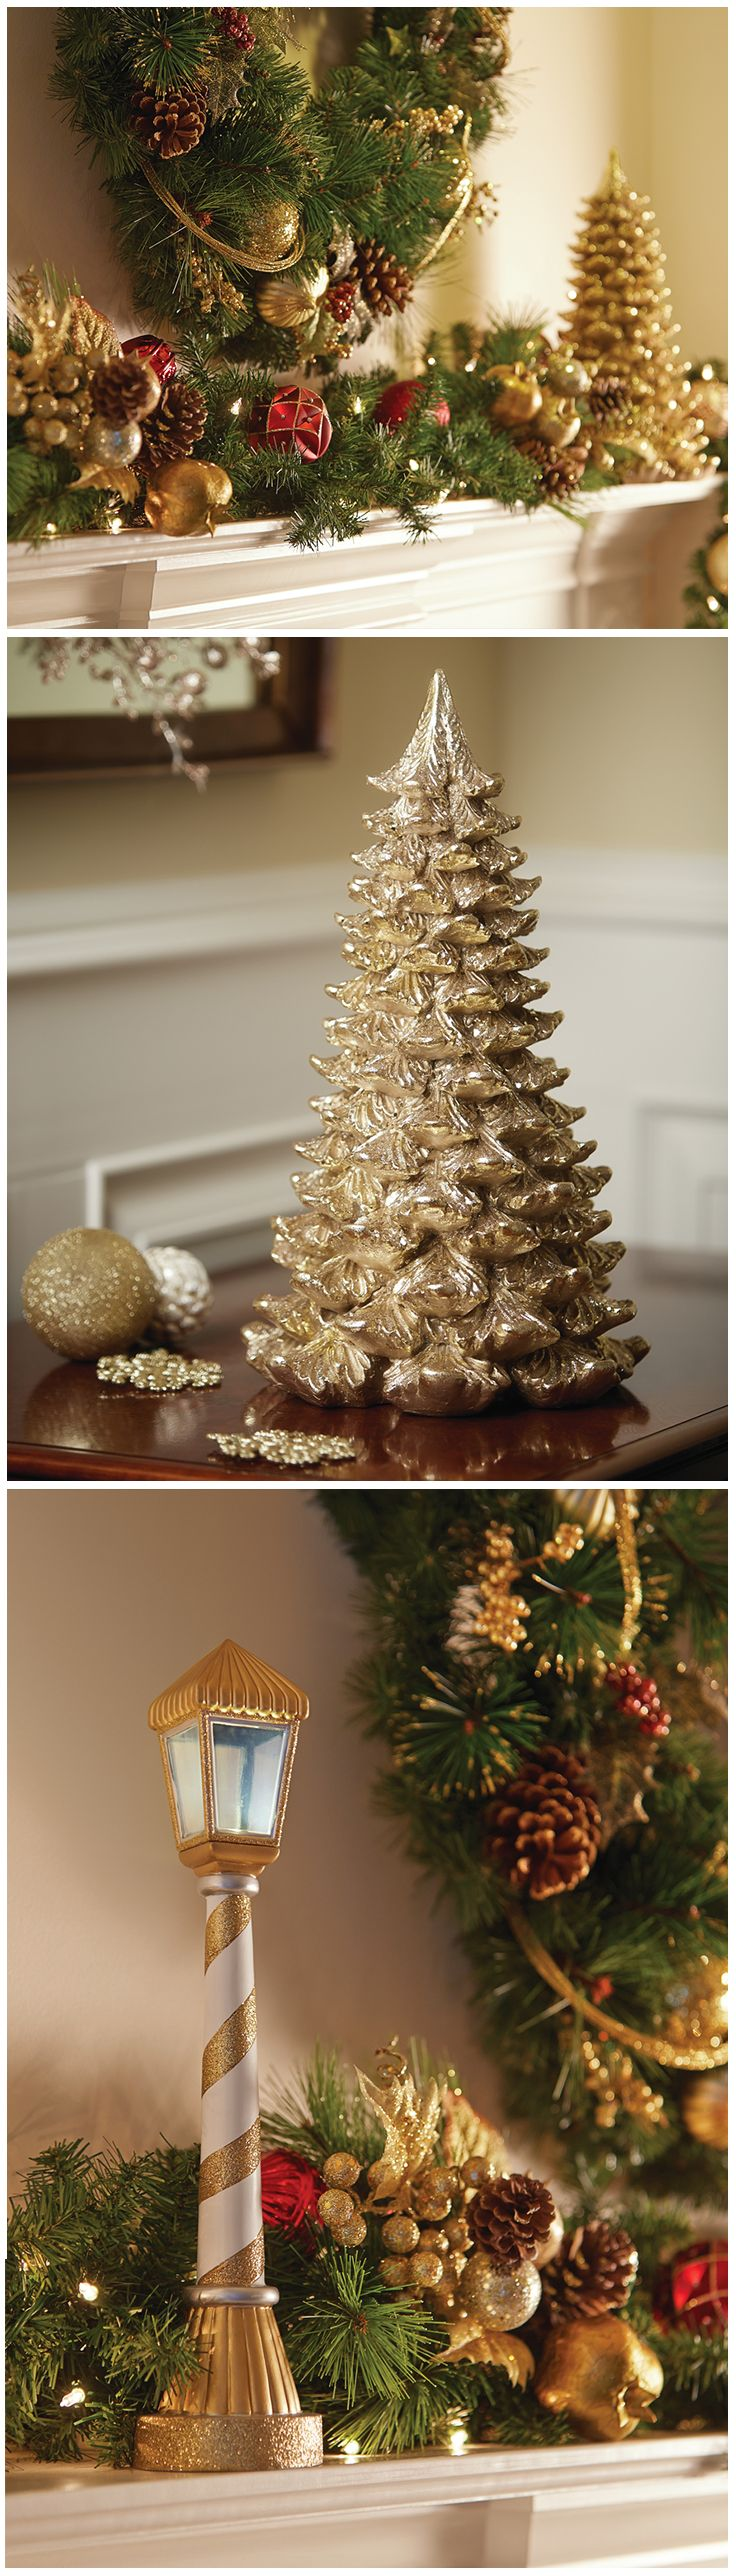 The sophisticated sparkle of the Winter's Wonder Holiday Collection by Martha Stewart Living adds so much Christmas cheer to a home. The Home Depot has many other ways to create a warm and festive look with indoor Christmas decorations. We have holiday figurines, table decorations, tree skirts and much more. Click through to see how you can build cheer in your home this holiday season.